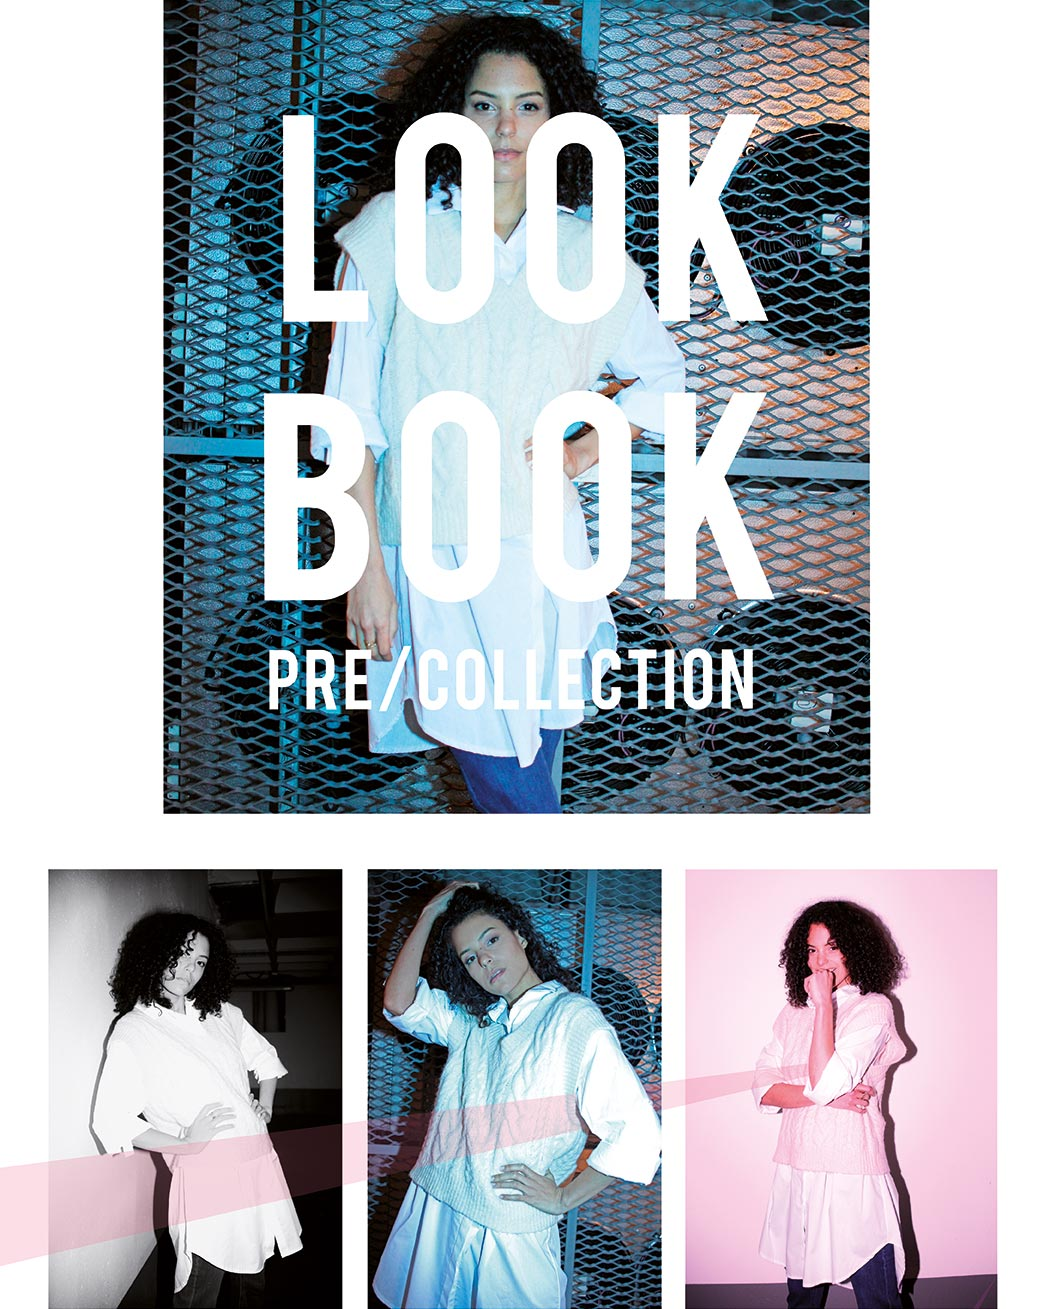 Lookbook pre/collection